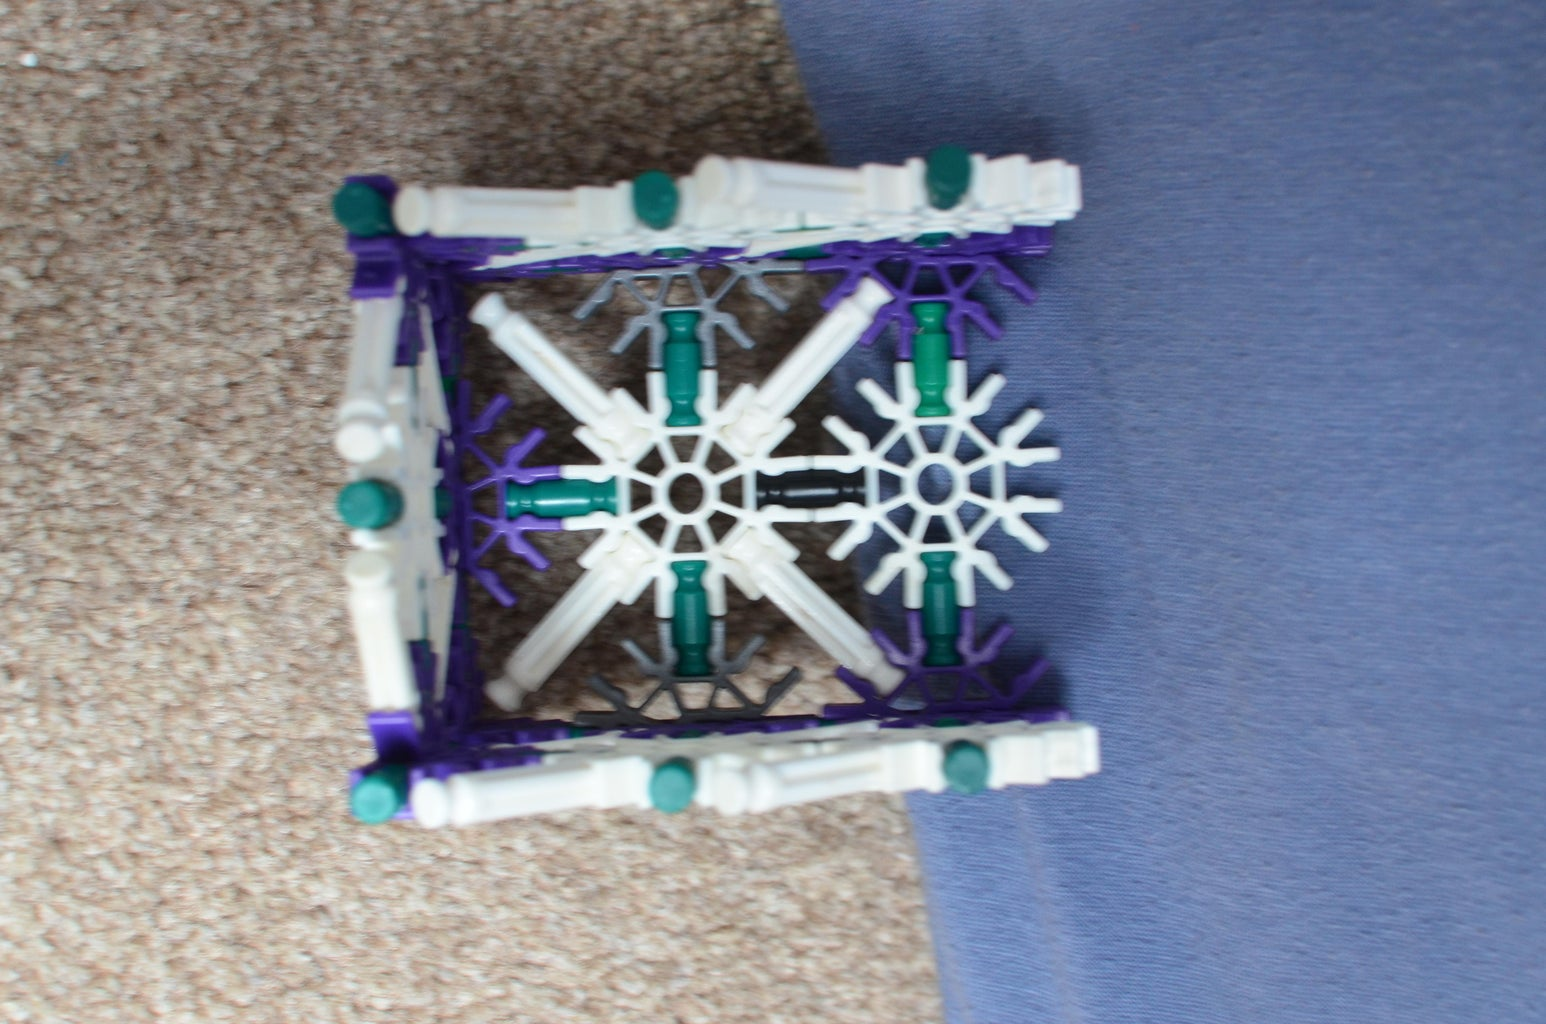 Build the Mechanism Cage